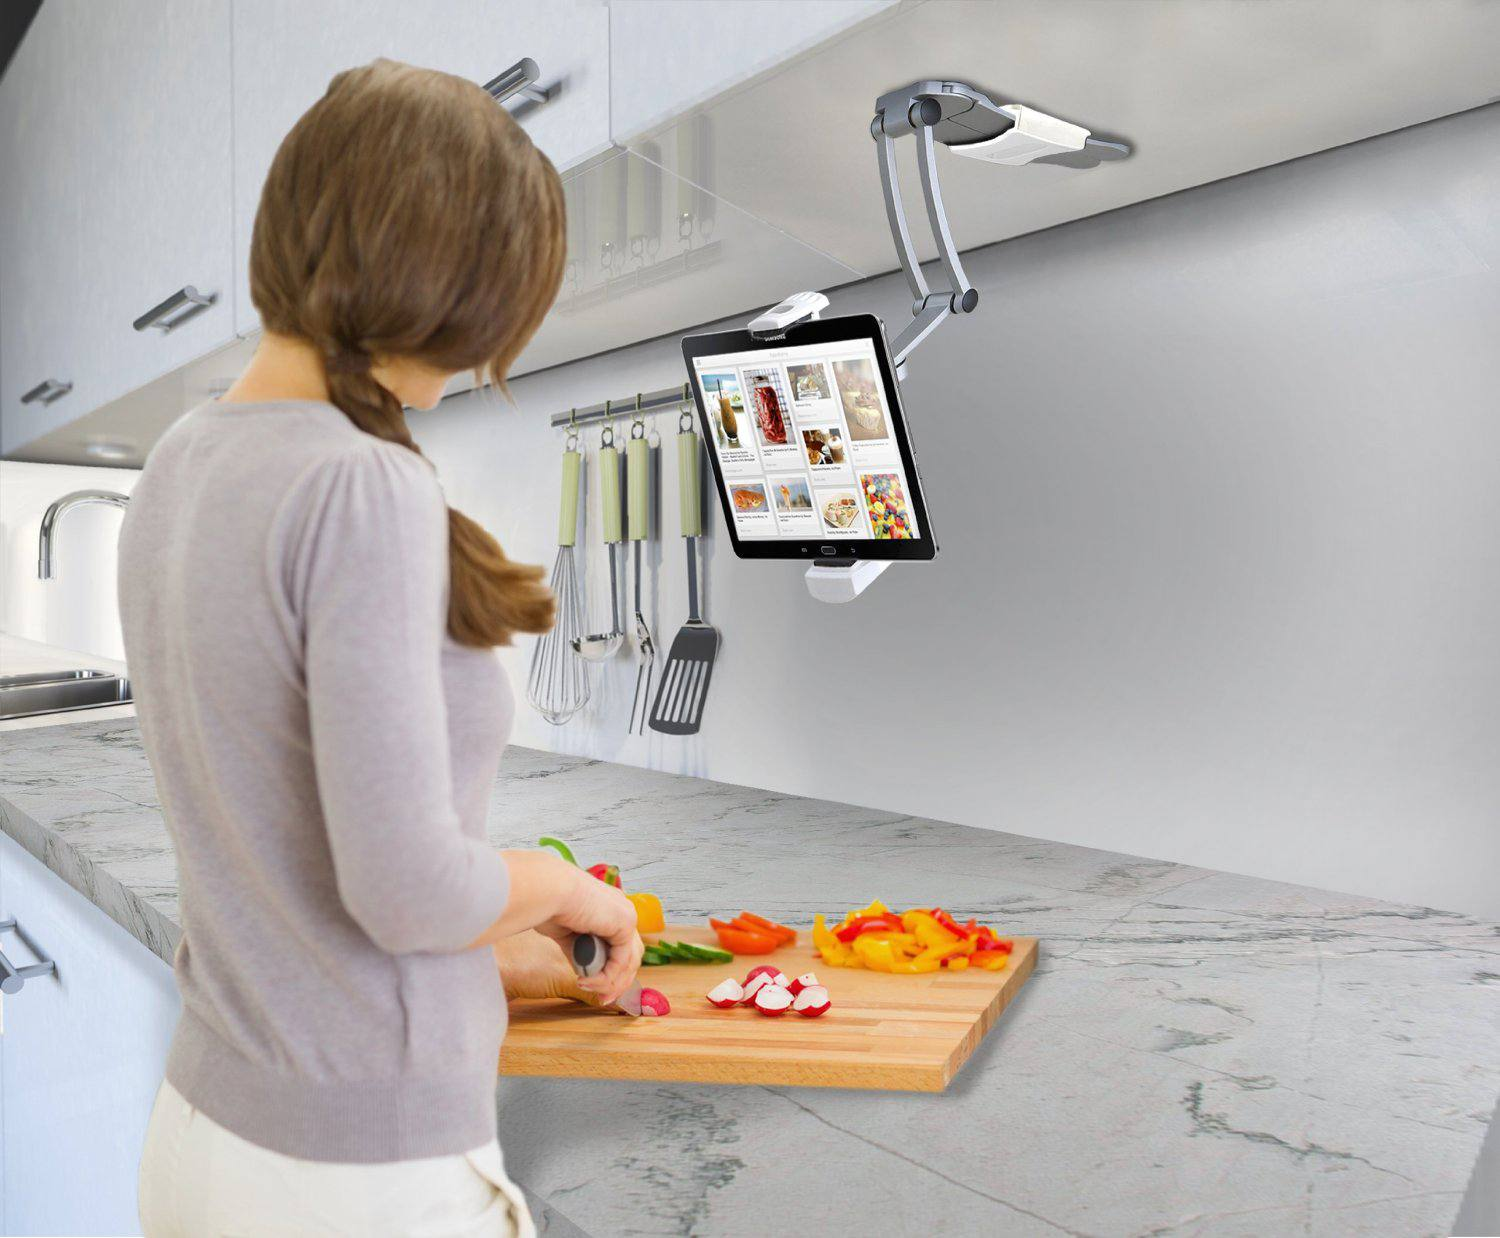 Stupendous The Best Accessories For Cooking With Your Ipad In 2019 Home Interior And Landscaping Palasignezvosmurscom